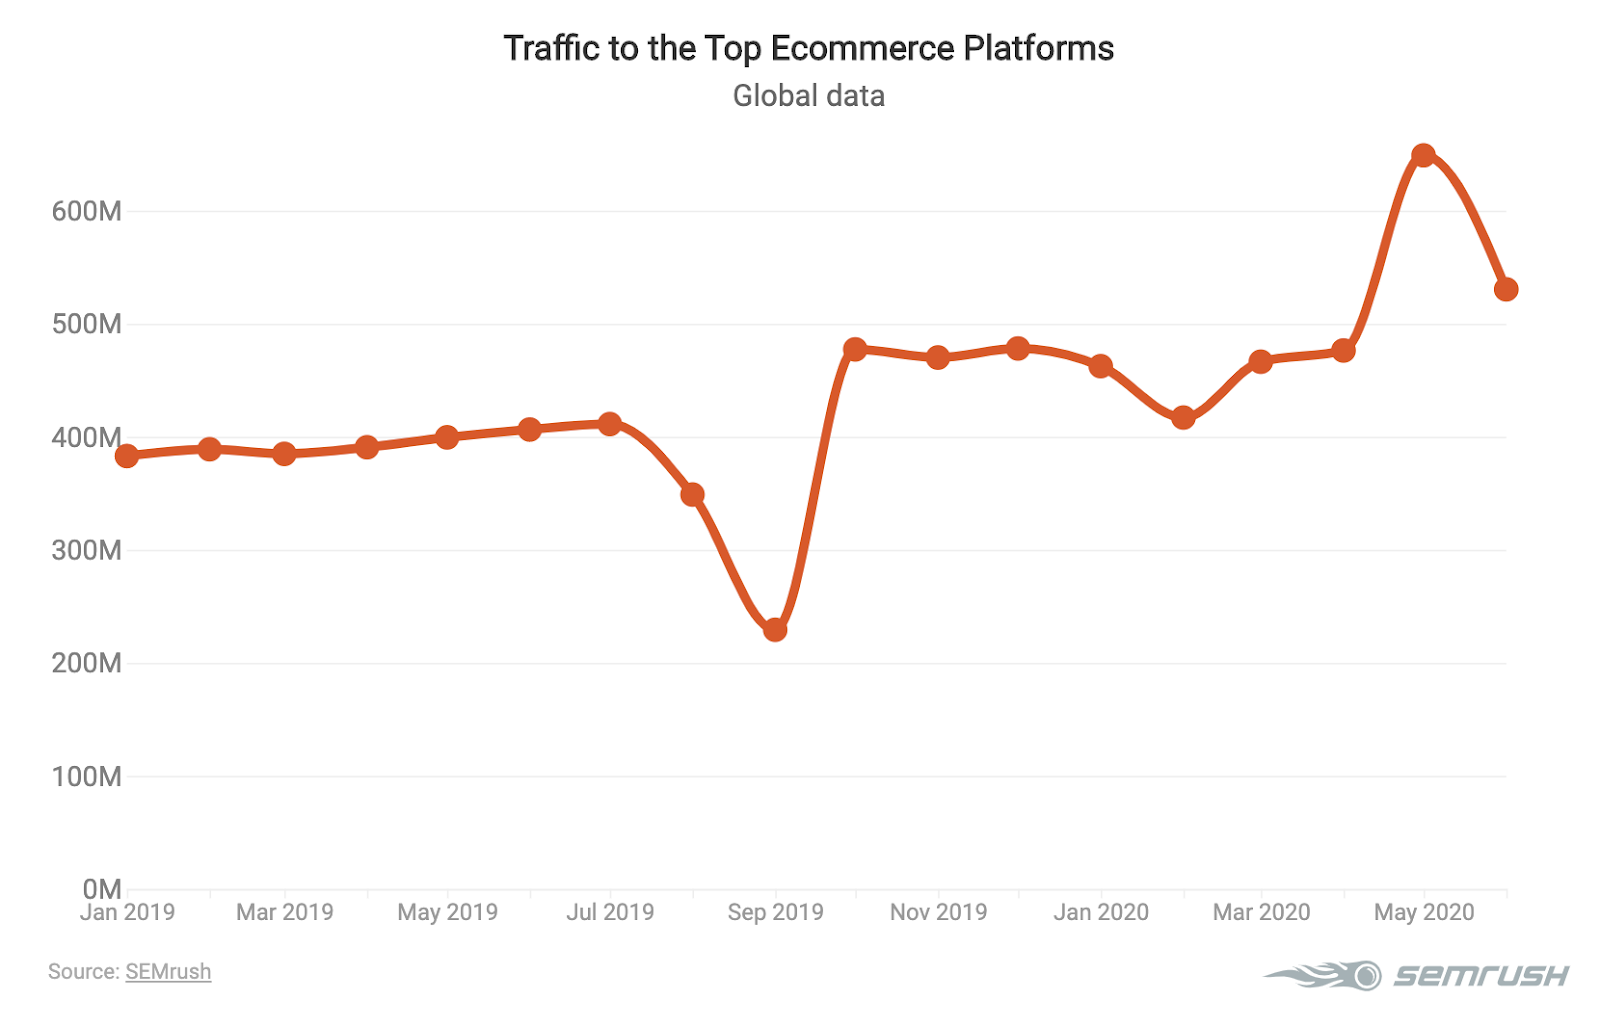 Graphic showing traffic trends related to ecommerce platforms in 2020